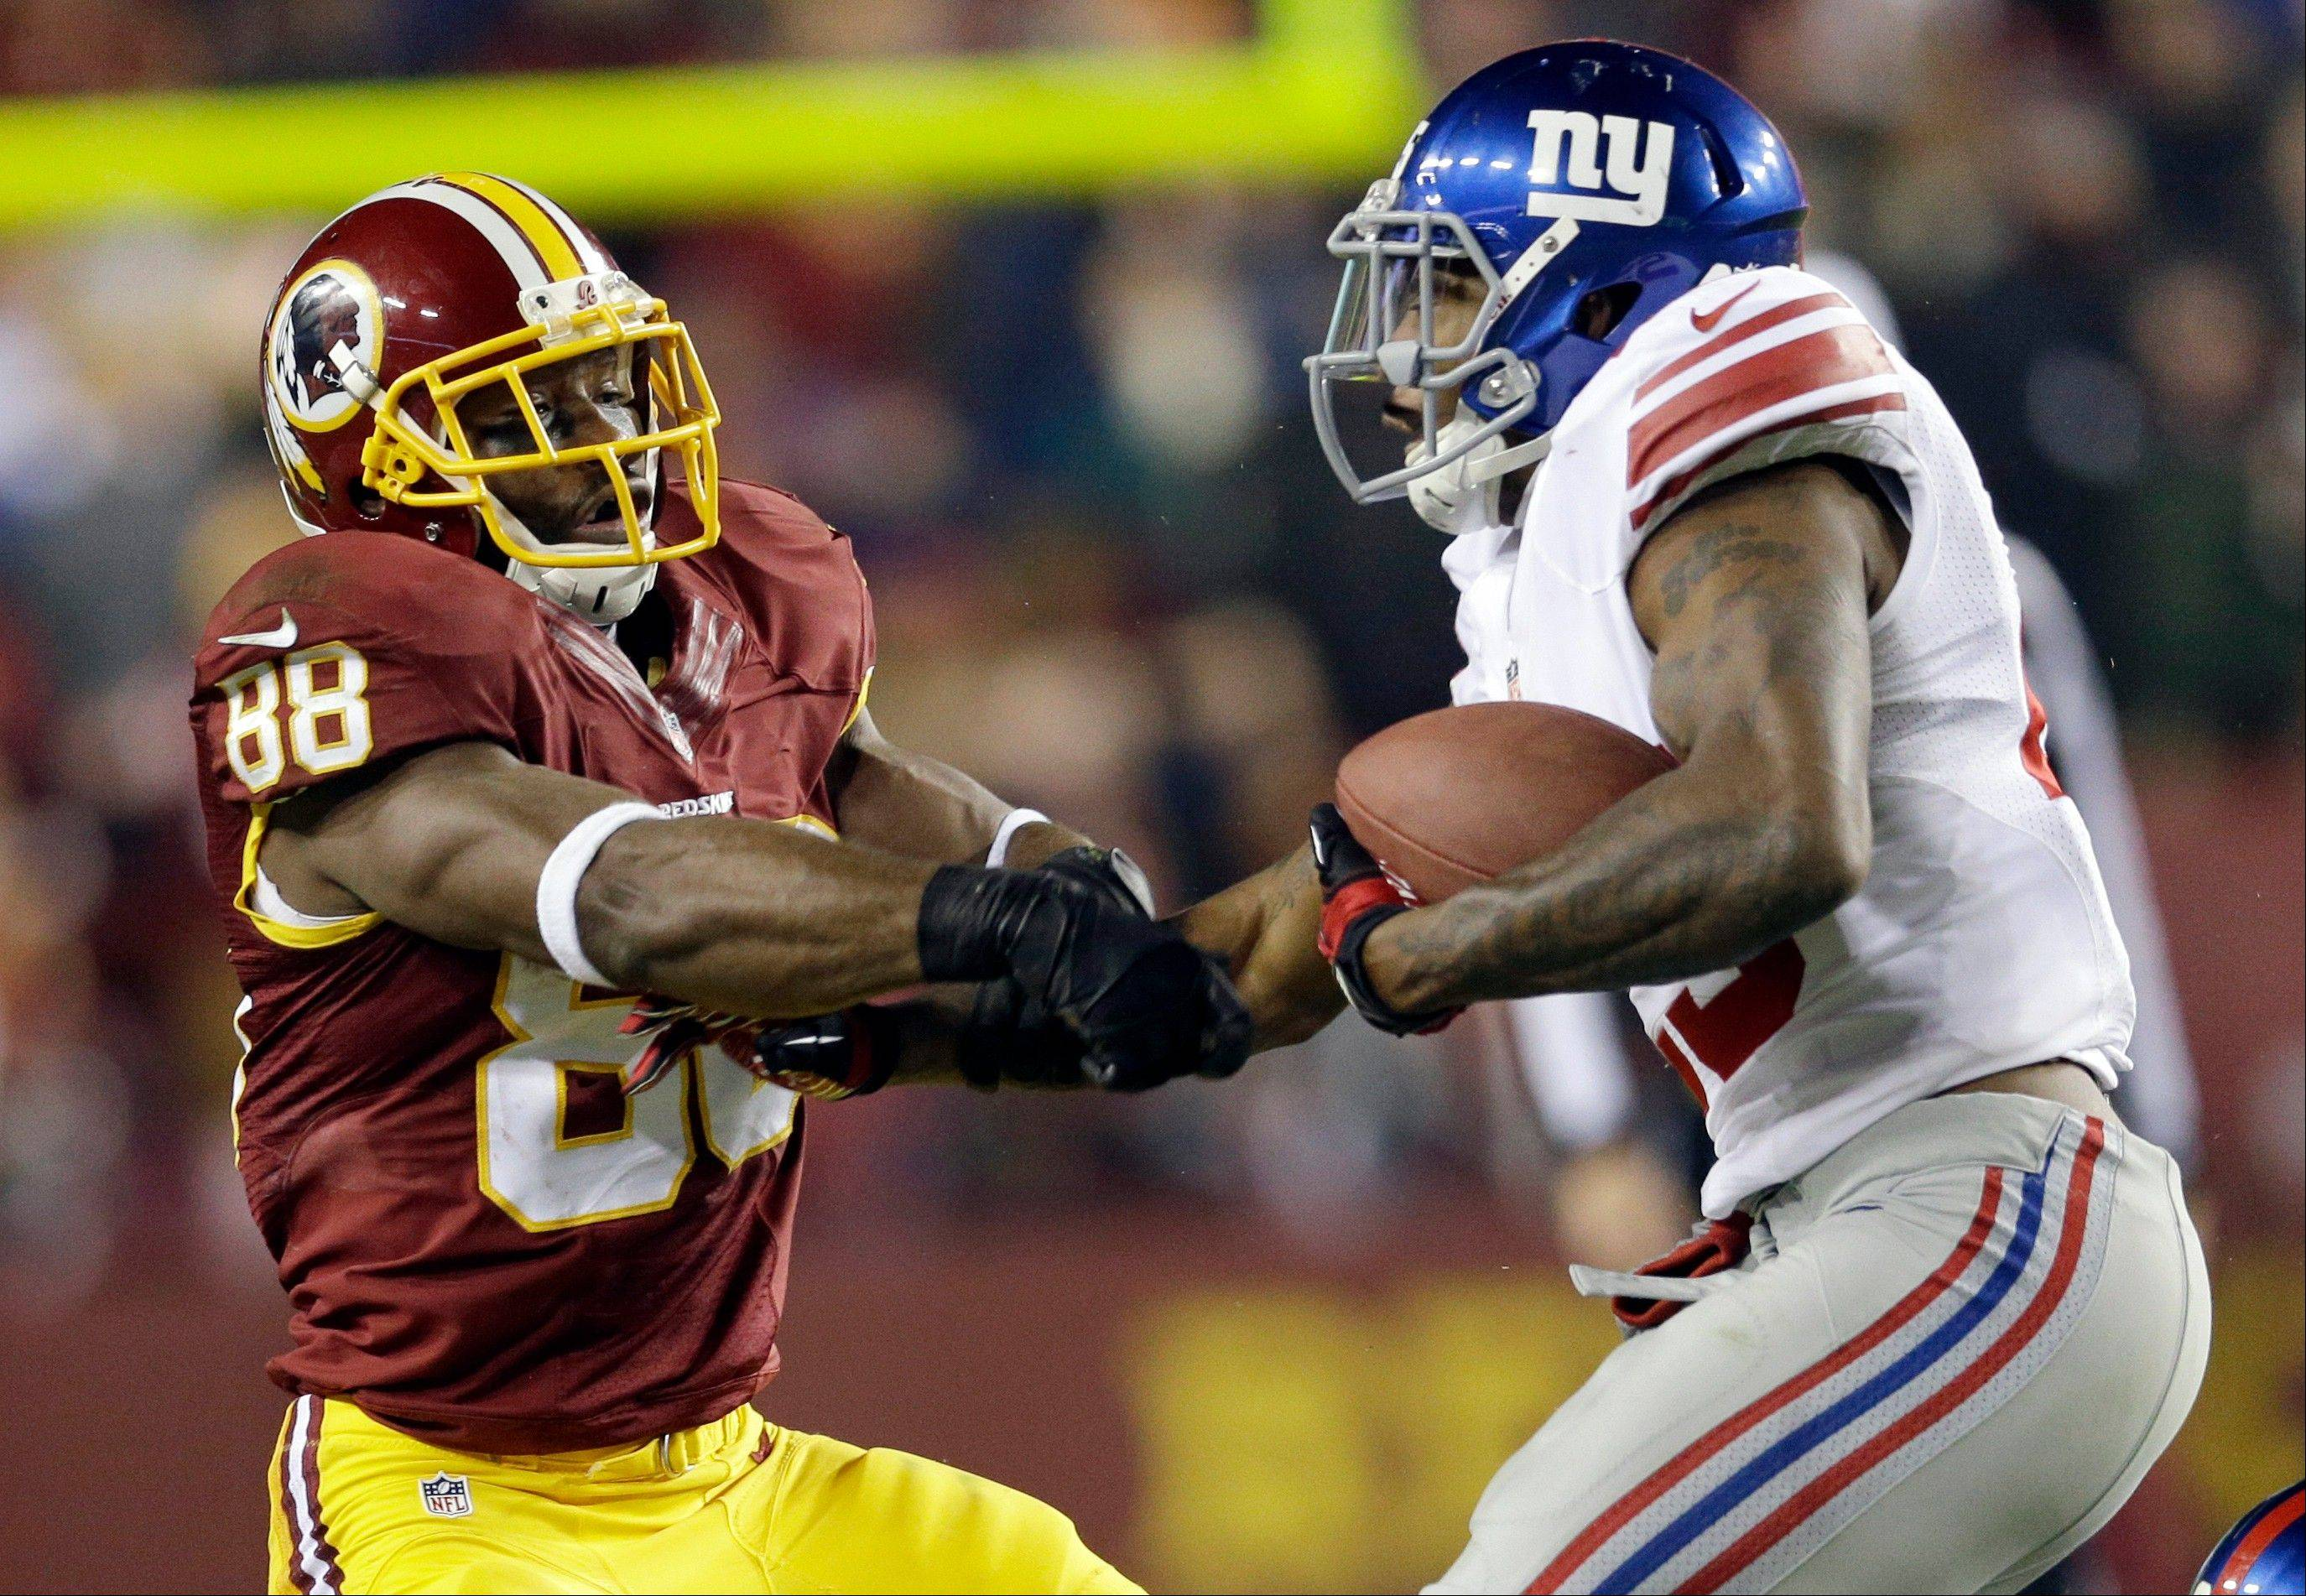 New York Giants free safety Will Hill, right, takes the football away from Washington Redskins wide receiver Pierre Garcon (88) during the second half of an NFL football game Sunday in Landover, Md.